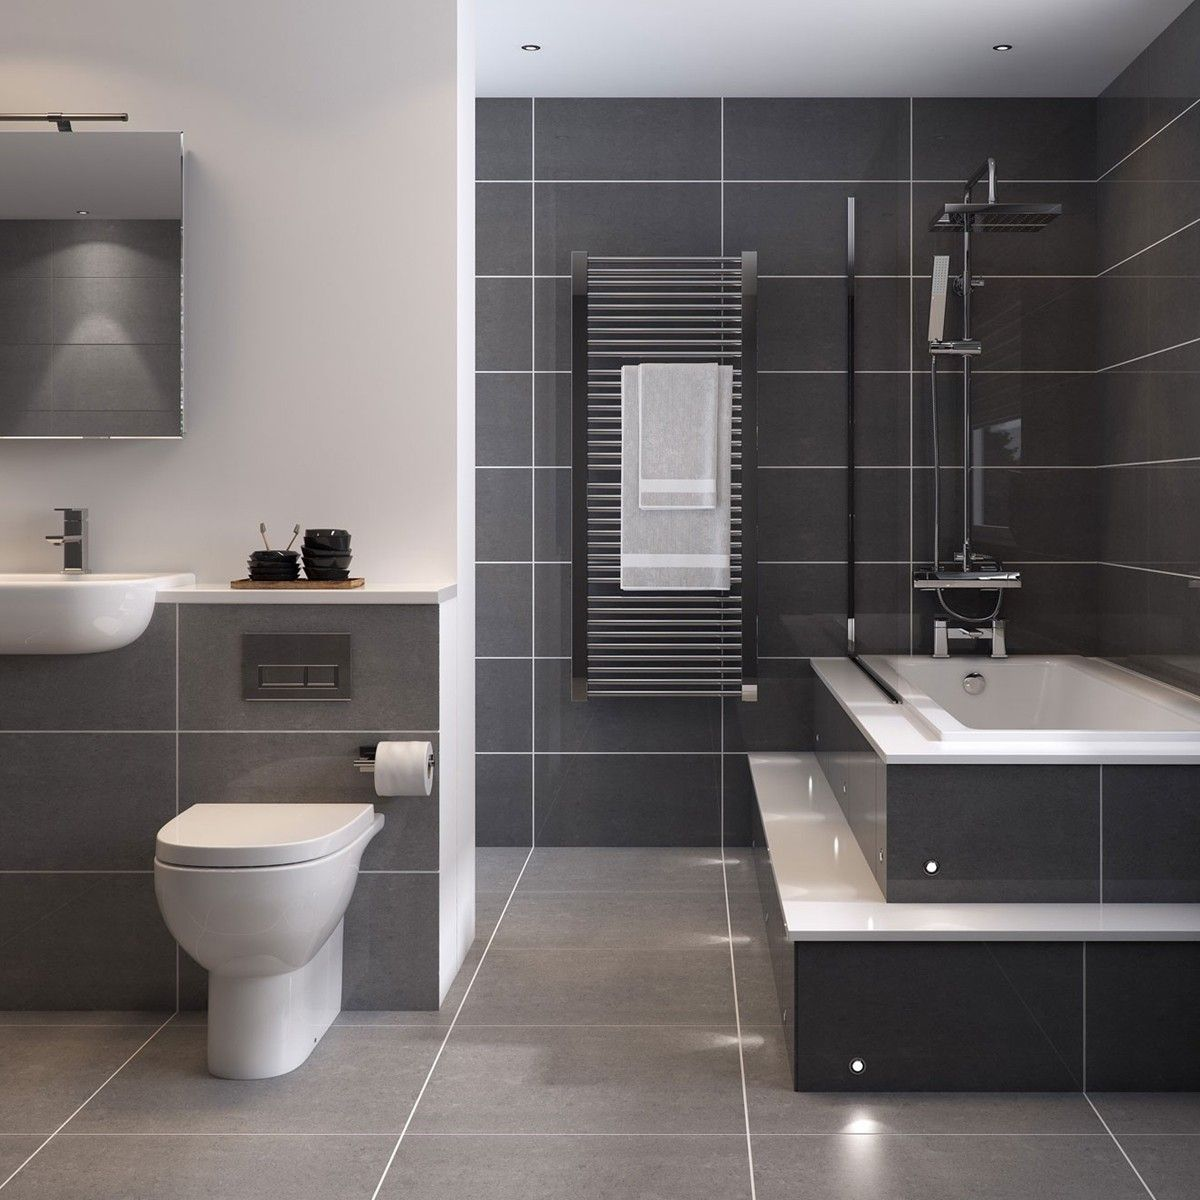 Super Polished Dark Grey Porcelain Wall And For Tile Is A Very Contemporary  Grey Tile Superb In Modern Settings. Part 80